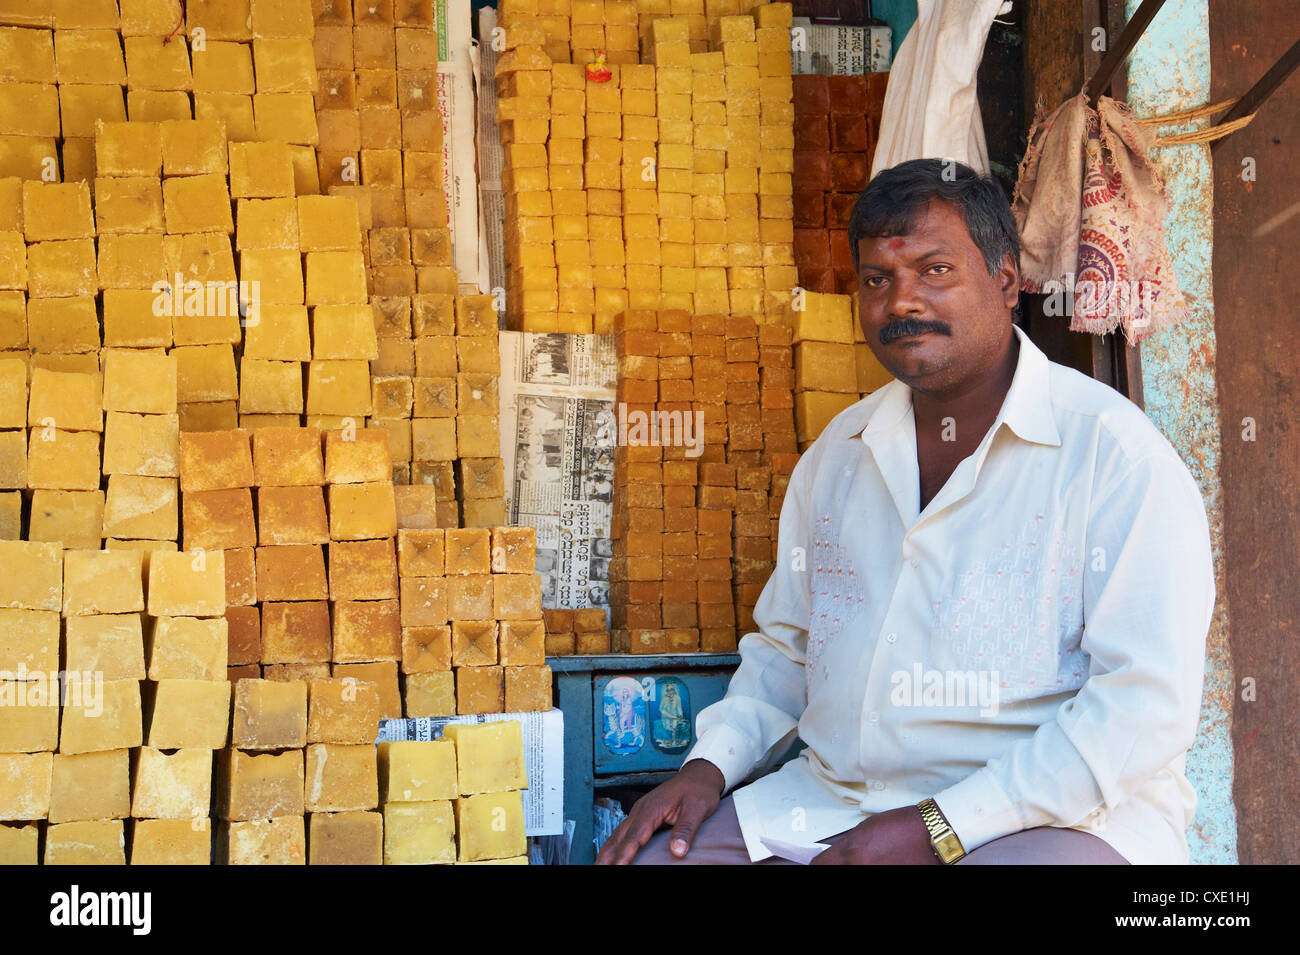 Sugar for sale, Devaraja market, Mysore, Karnataka, India, Asia - Stock Image